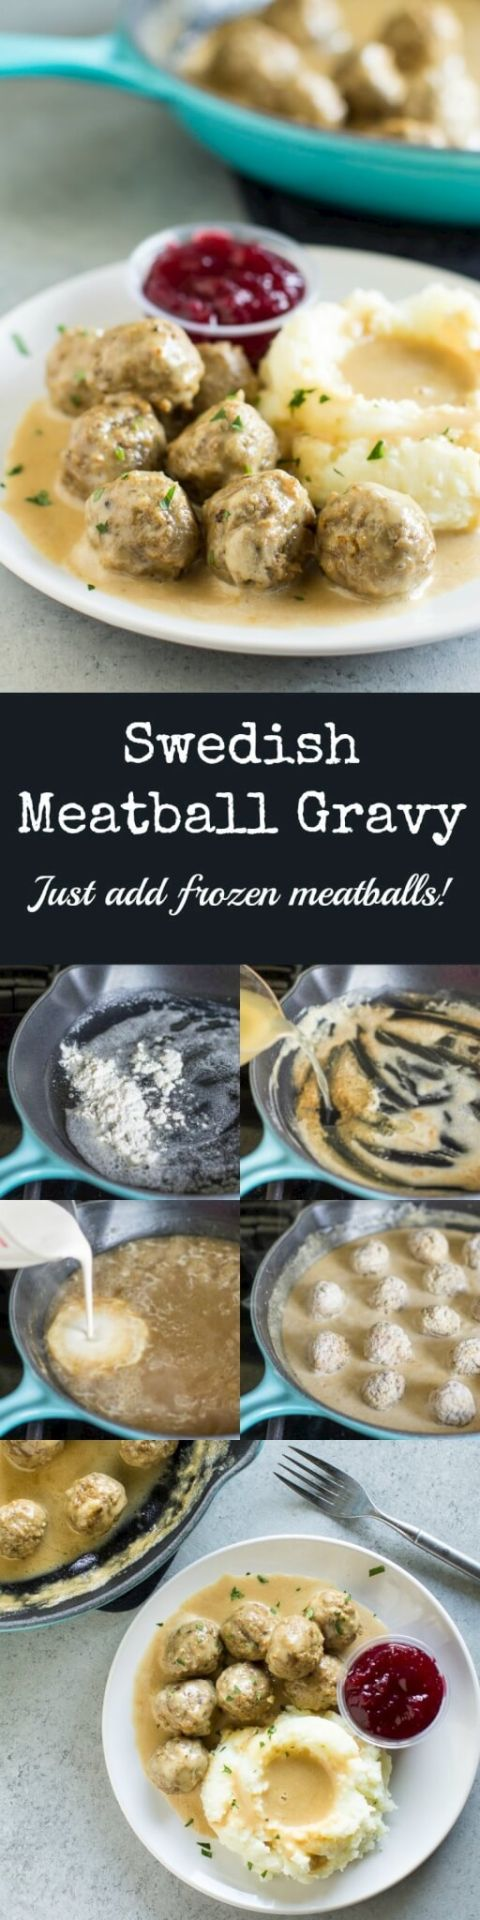 For those times you don't want to make meatballs from scratch, here is an easy recipe for just Swedish Meatball Gravy. Add frozen meatballs and you're done!